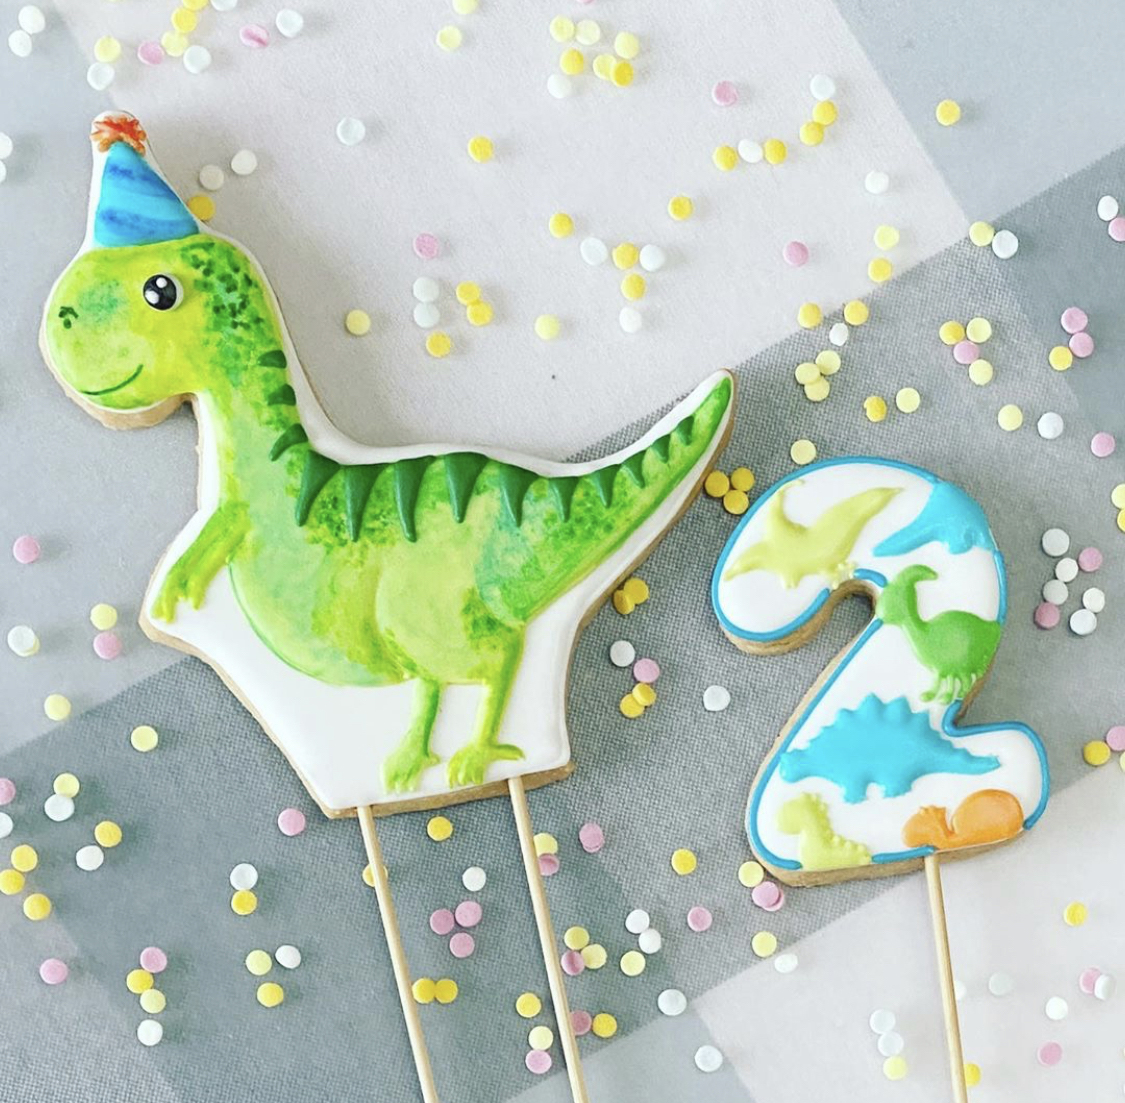 8 Dinosaur Cookies You Can Buy - Decorated Icing